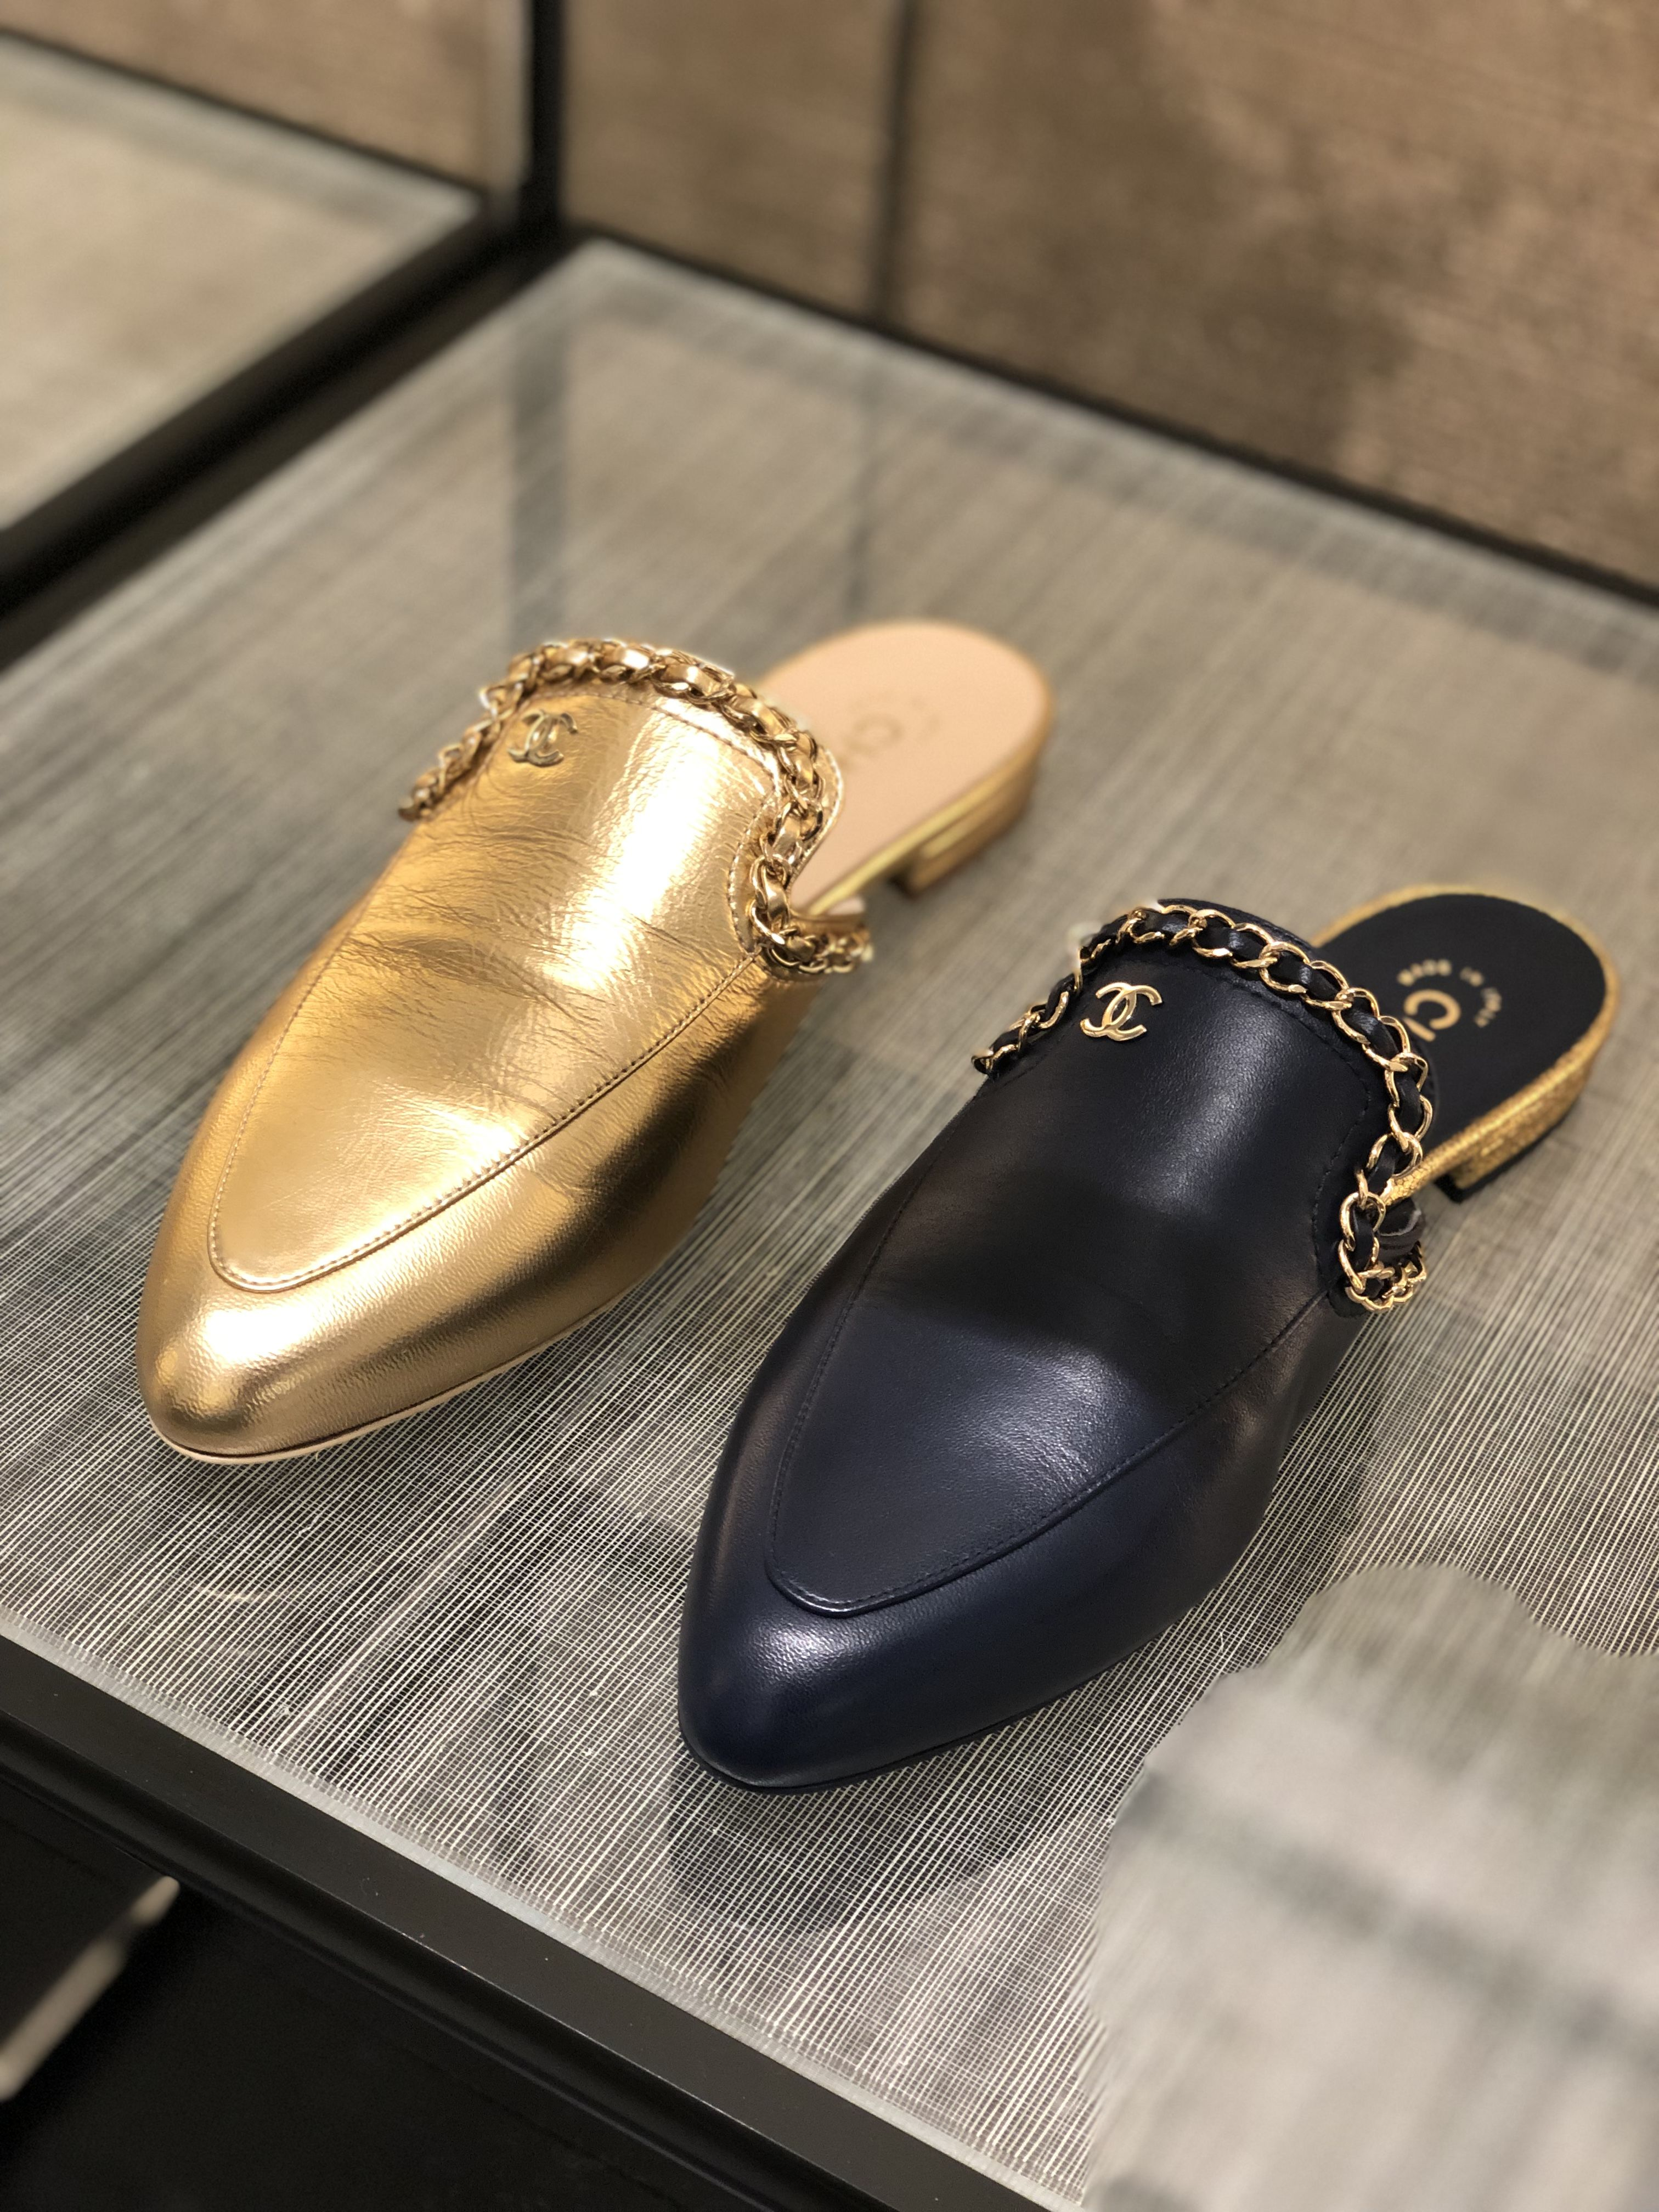 Chanel pre-fall 19 Egypt leather mules